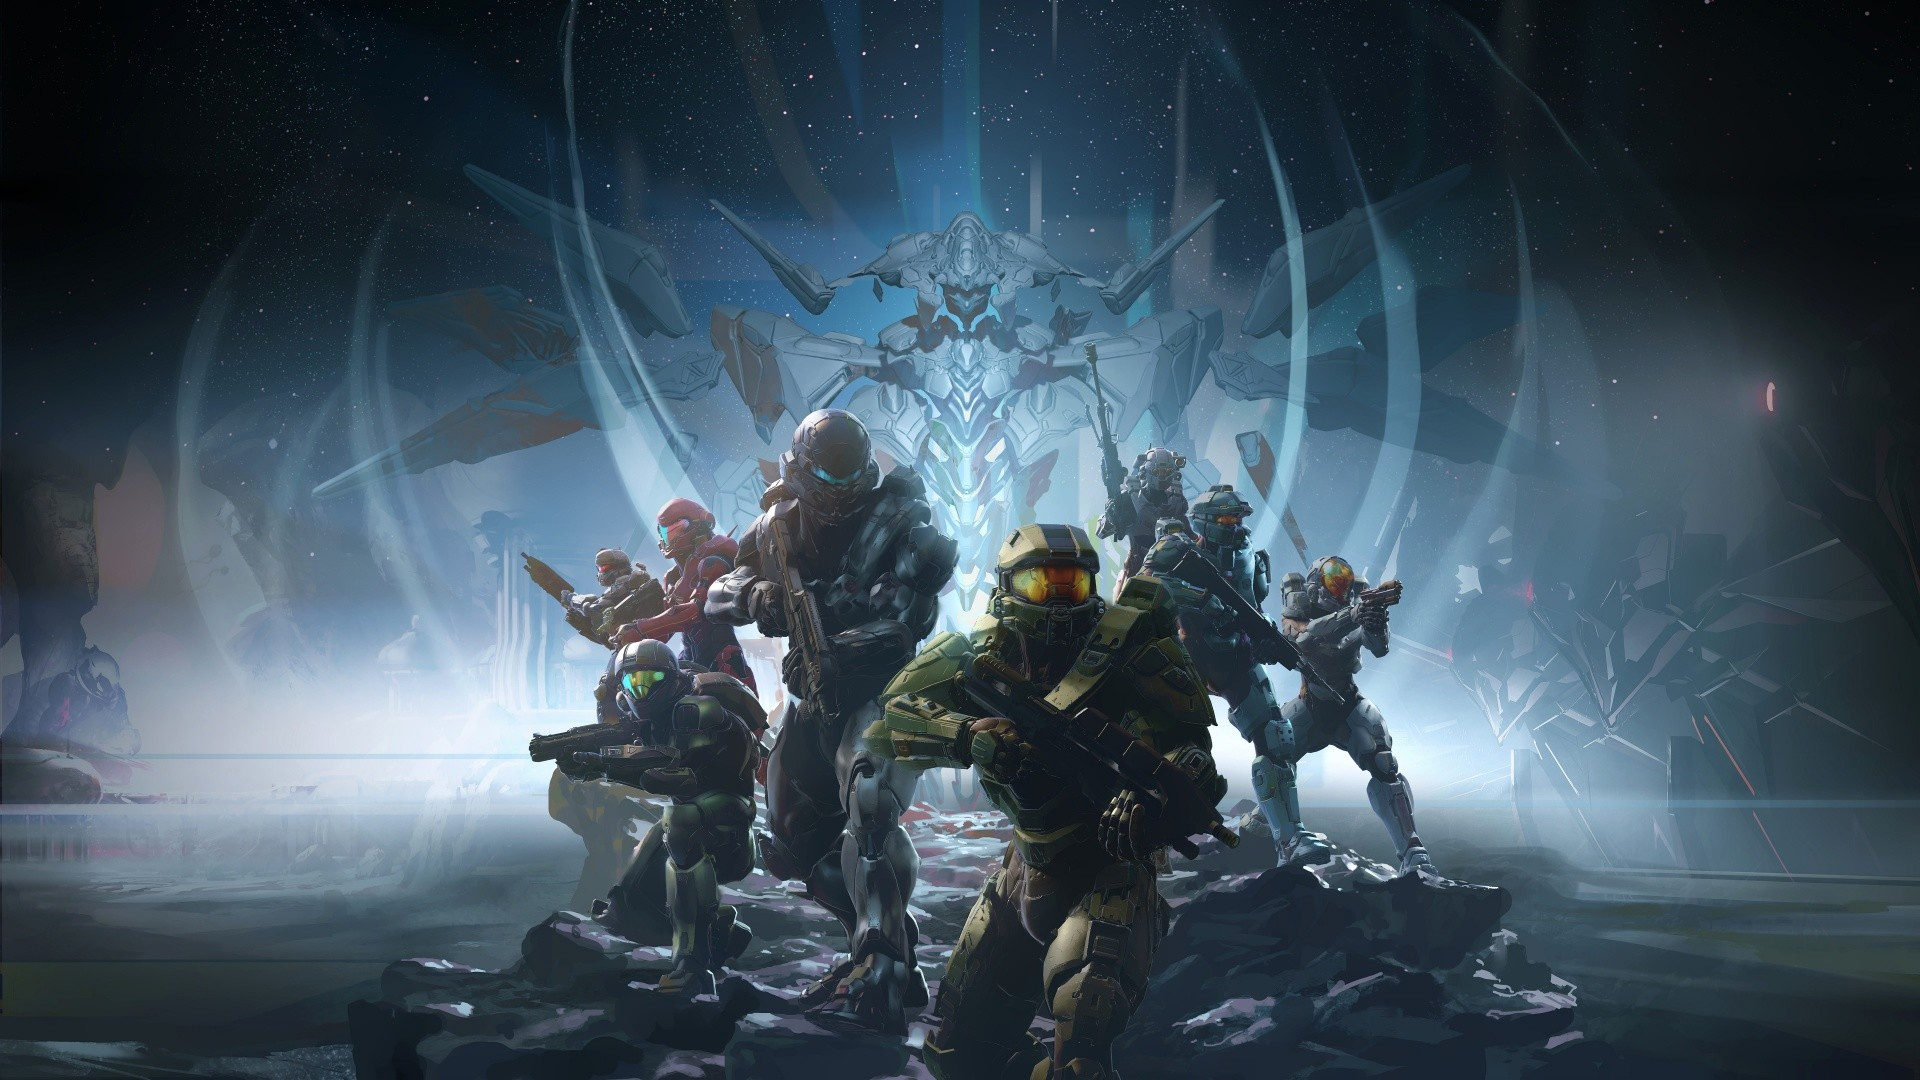 Halo 5 Guardians Game Wallpapers